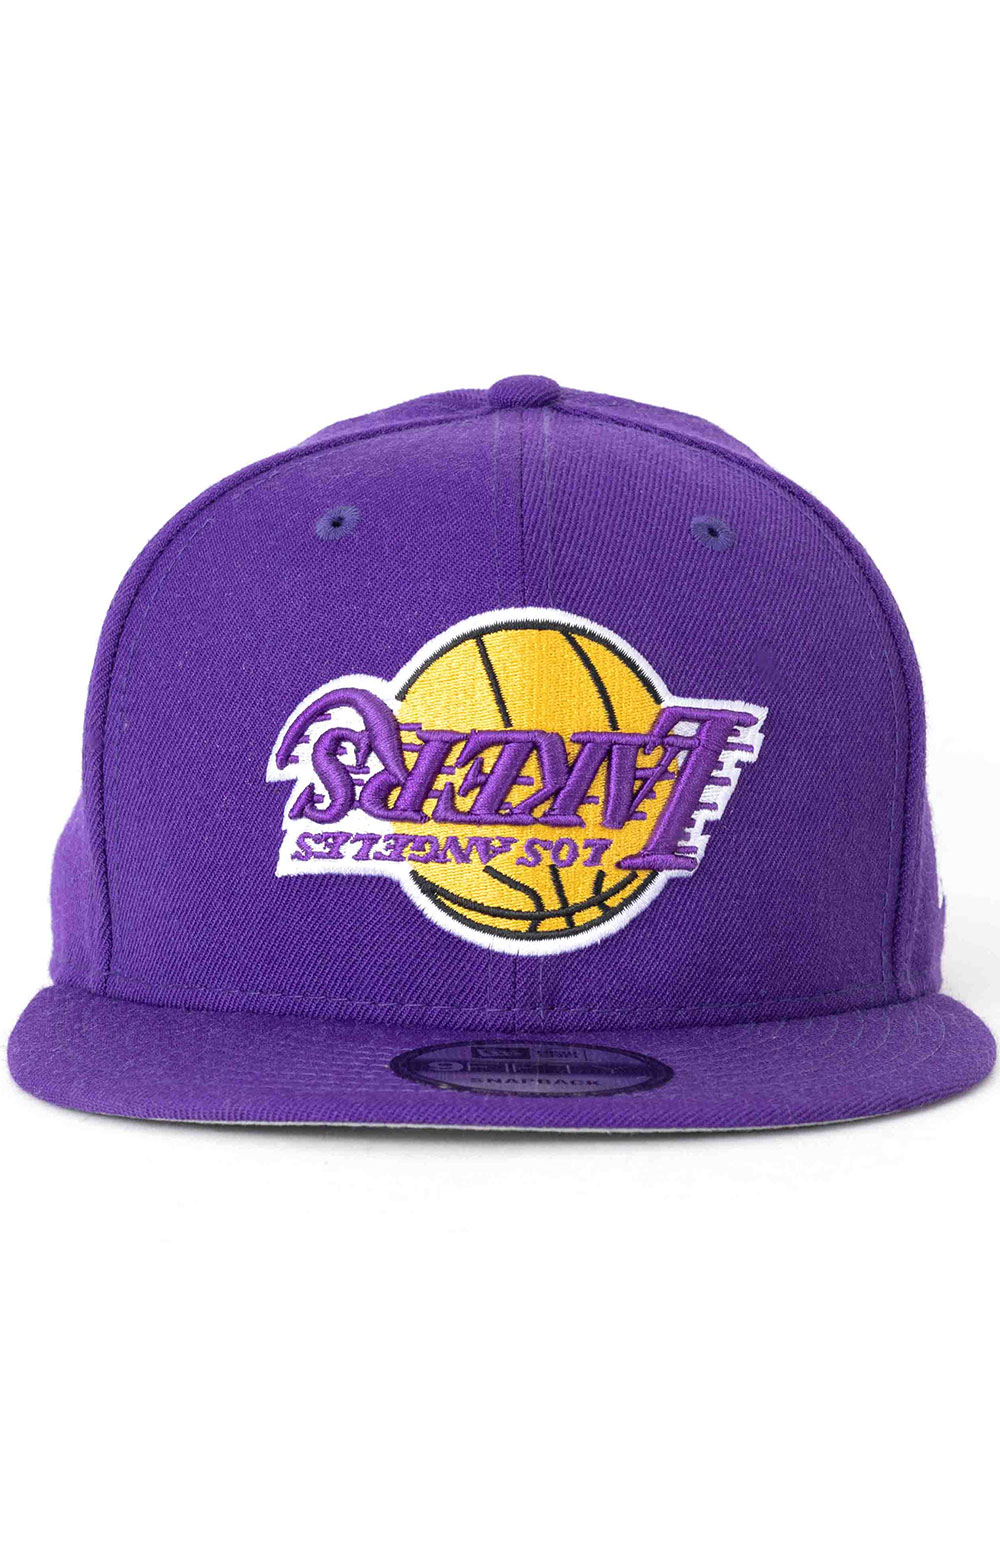 9Fifty Upside Logo Los Angeles Lakers Snap-Back Hat 2